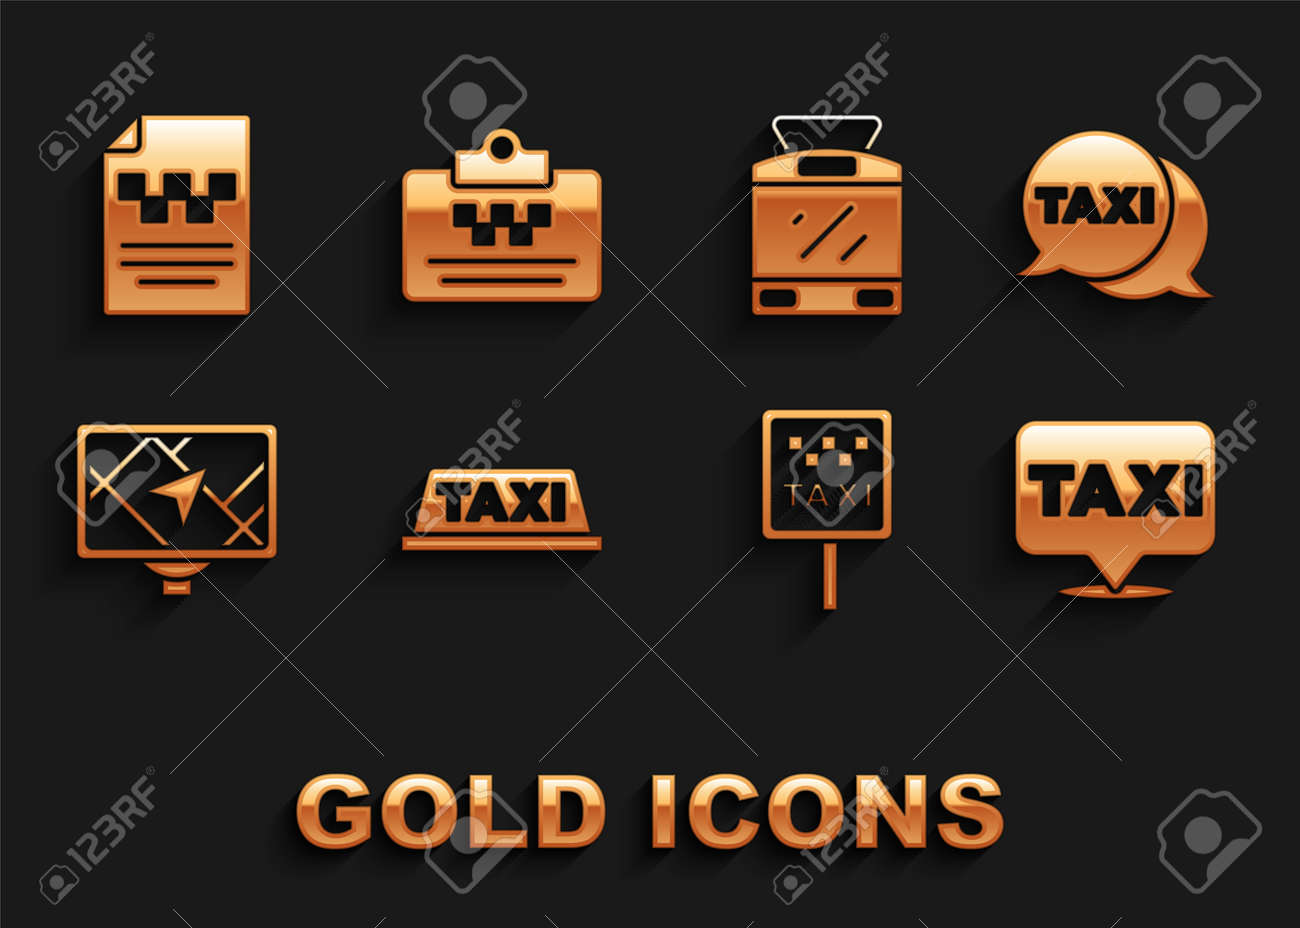 Set Taxi car roof, call telephone service, Location with taxi, Road sign for stand, Gps device map, Tram railway, driver license and icon. Vector - 173396180